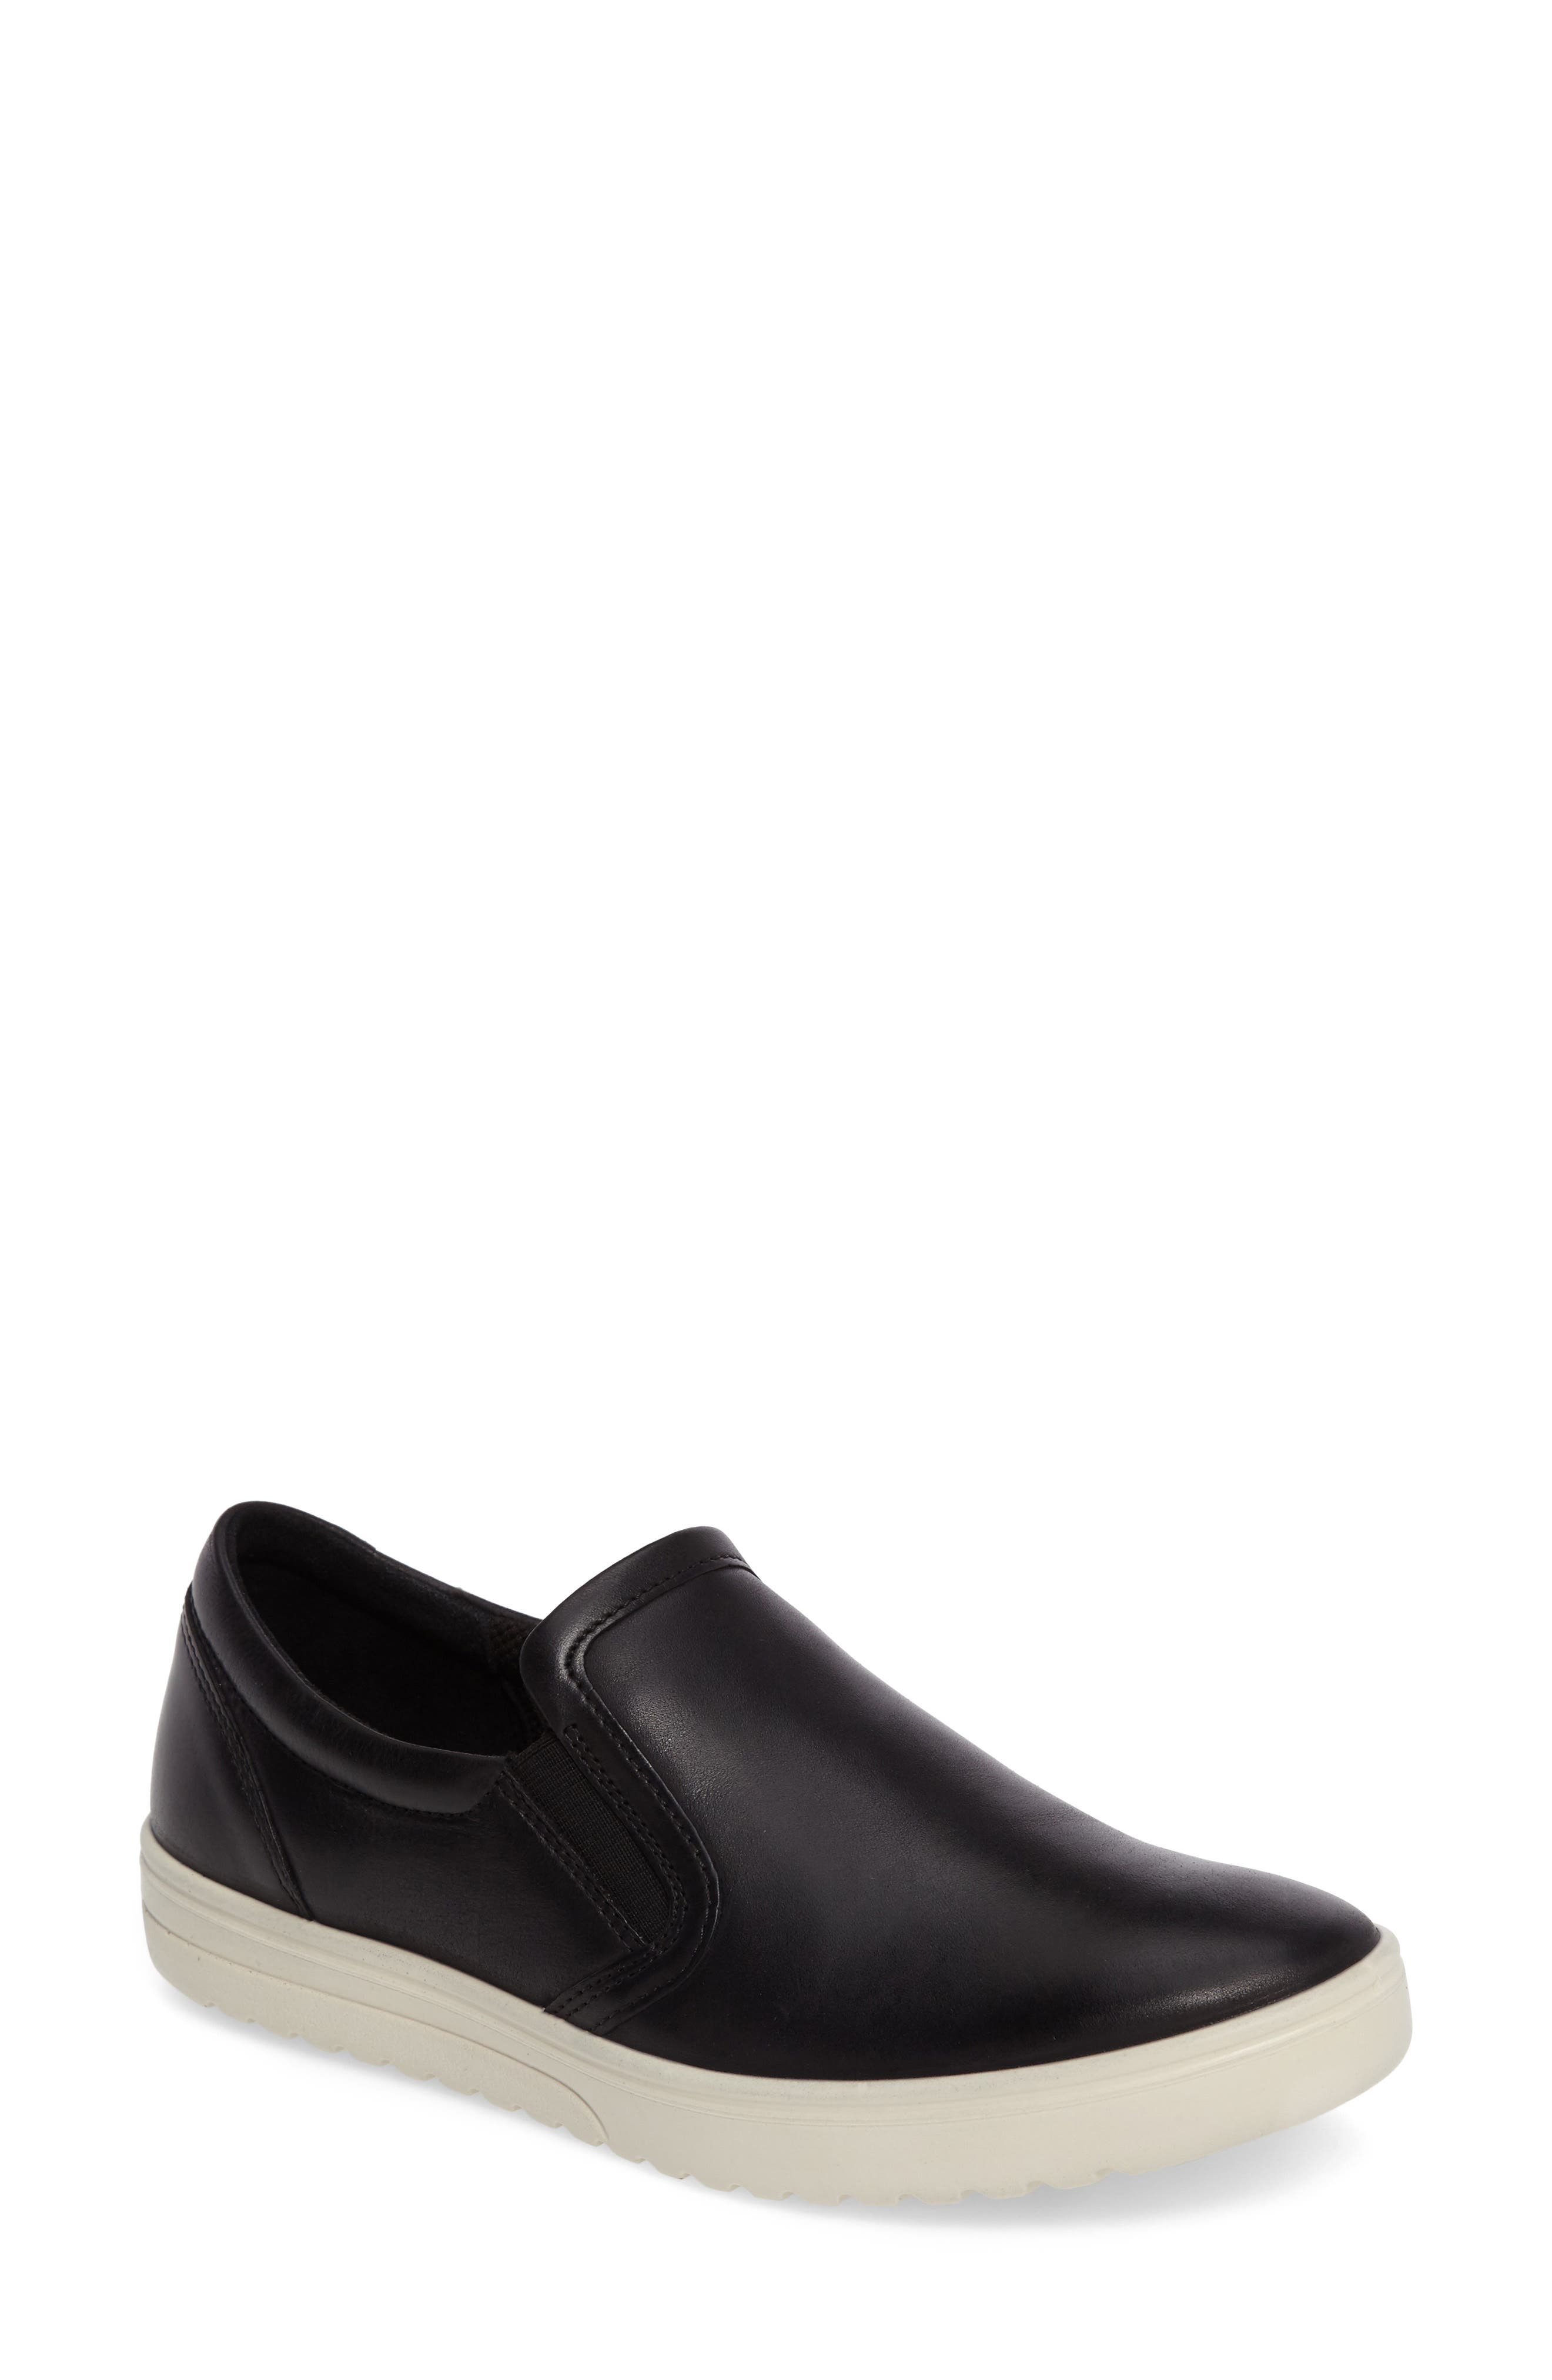 ECCO Fara Slip-On Sneaker (Women)